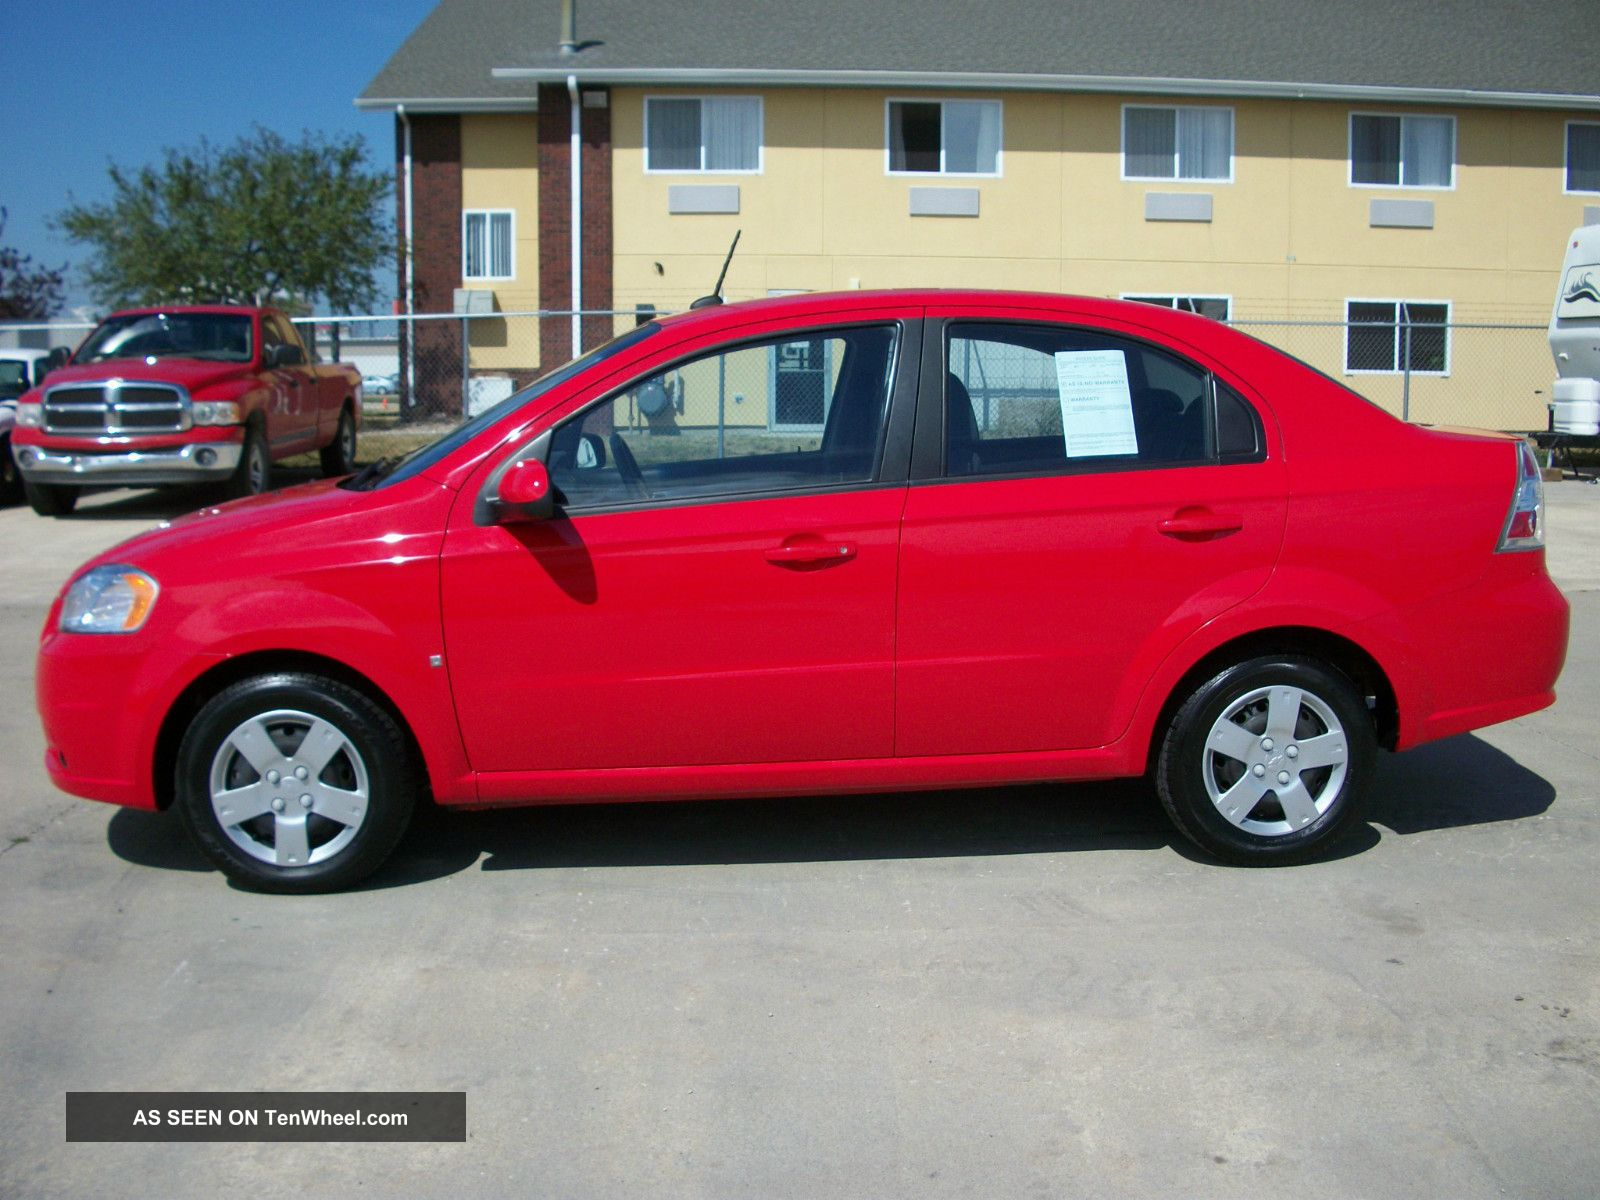 2009 chevrolet aveo lt sedan 5 speed manual red. Black Bedroom Furniture Sets. Home Design Ideas